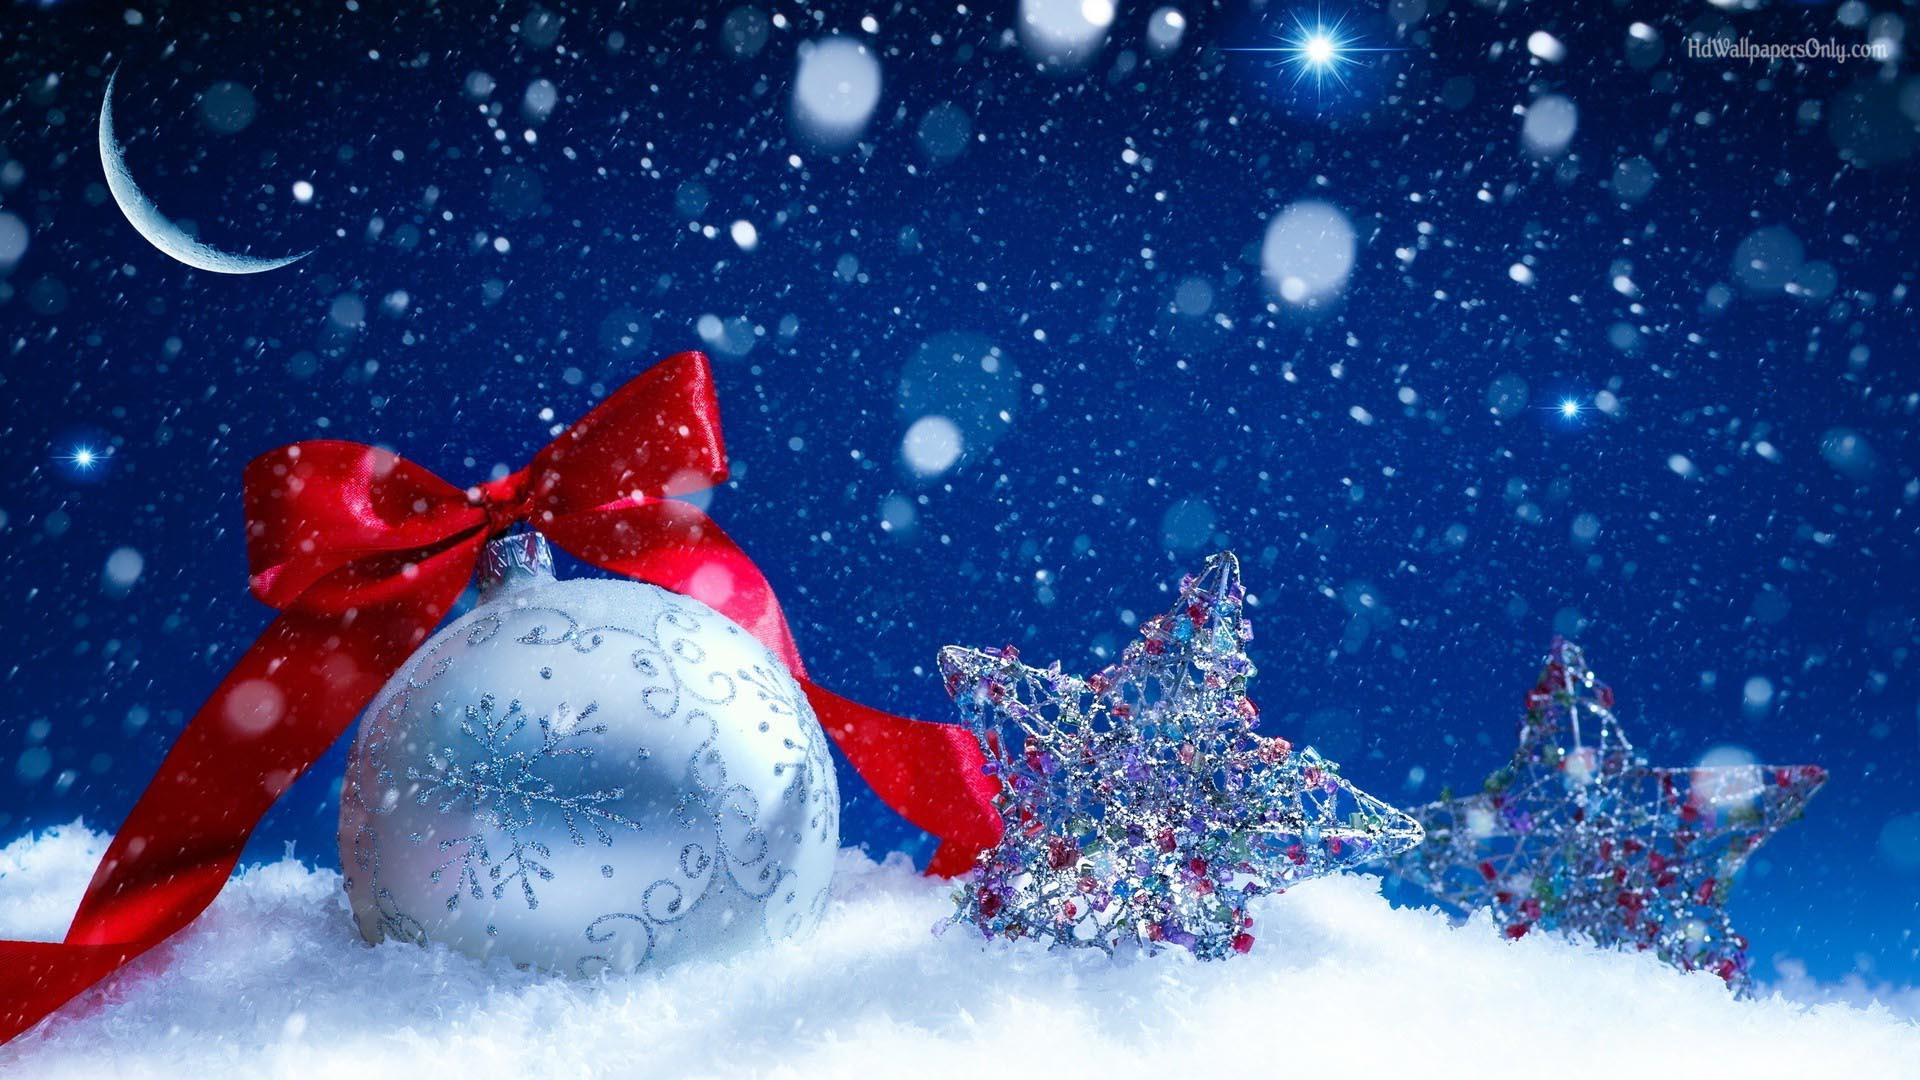 1920x1080 Christmas Christmas Winter Vector Wallpapers (Desktop, Phone